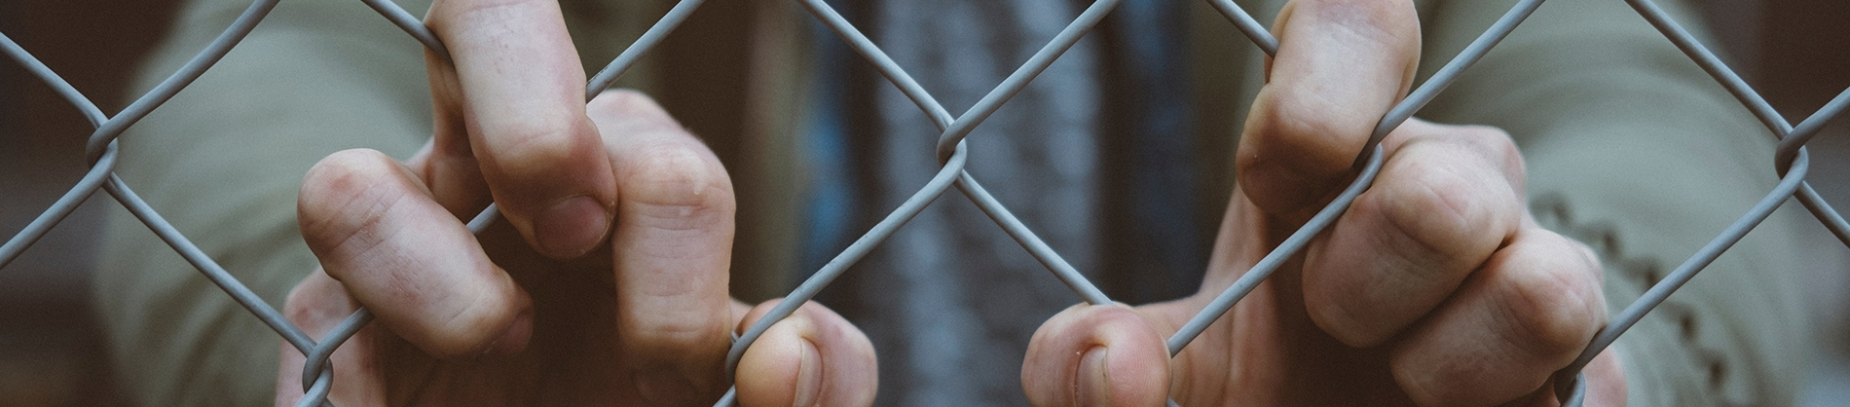 A person standing behind a wire fence holding on to the wire with their hands